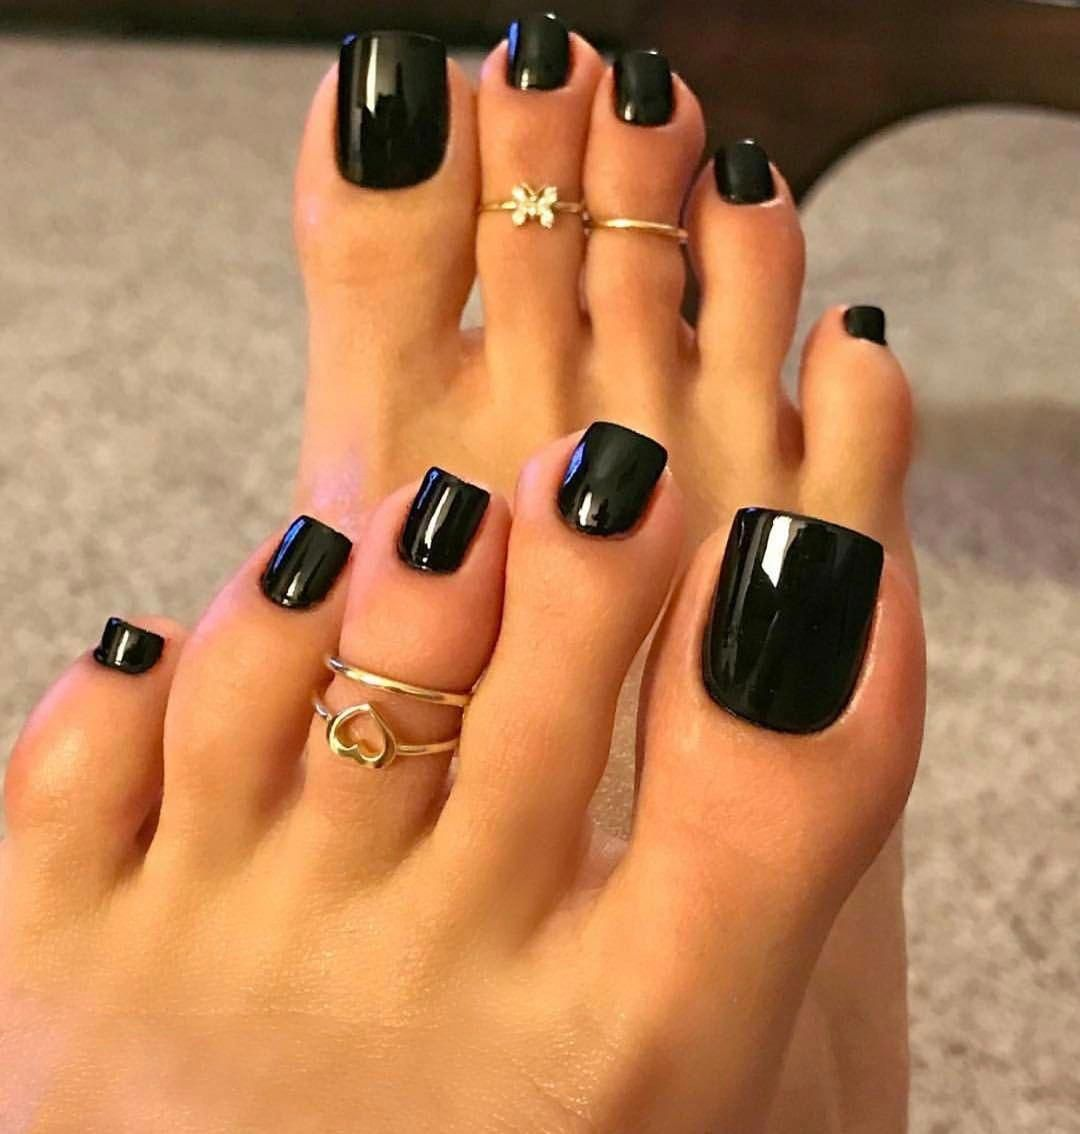 20 Easy To Do Toe Nail Art Design Ideas For 2019 Acrylic Toes Acrylic Toe Nails Pretty Toe Nails